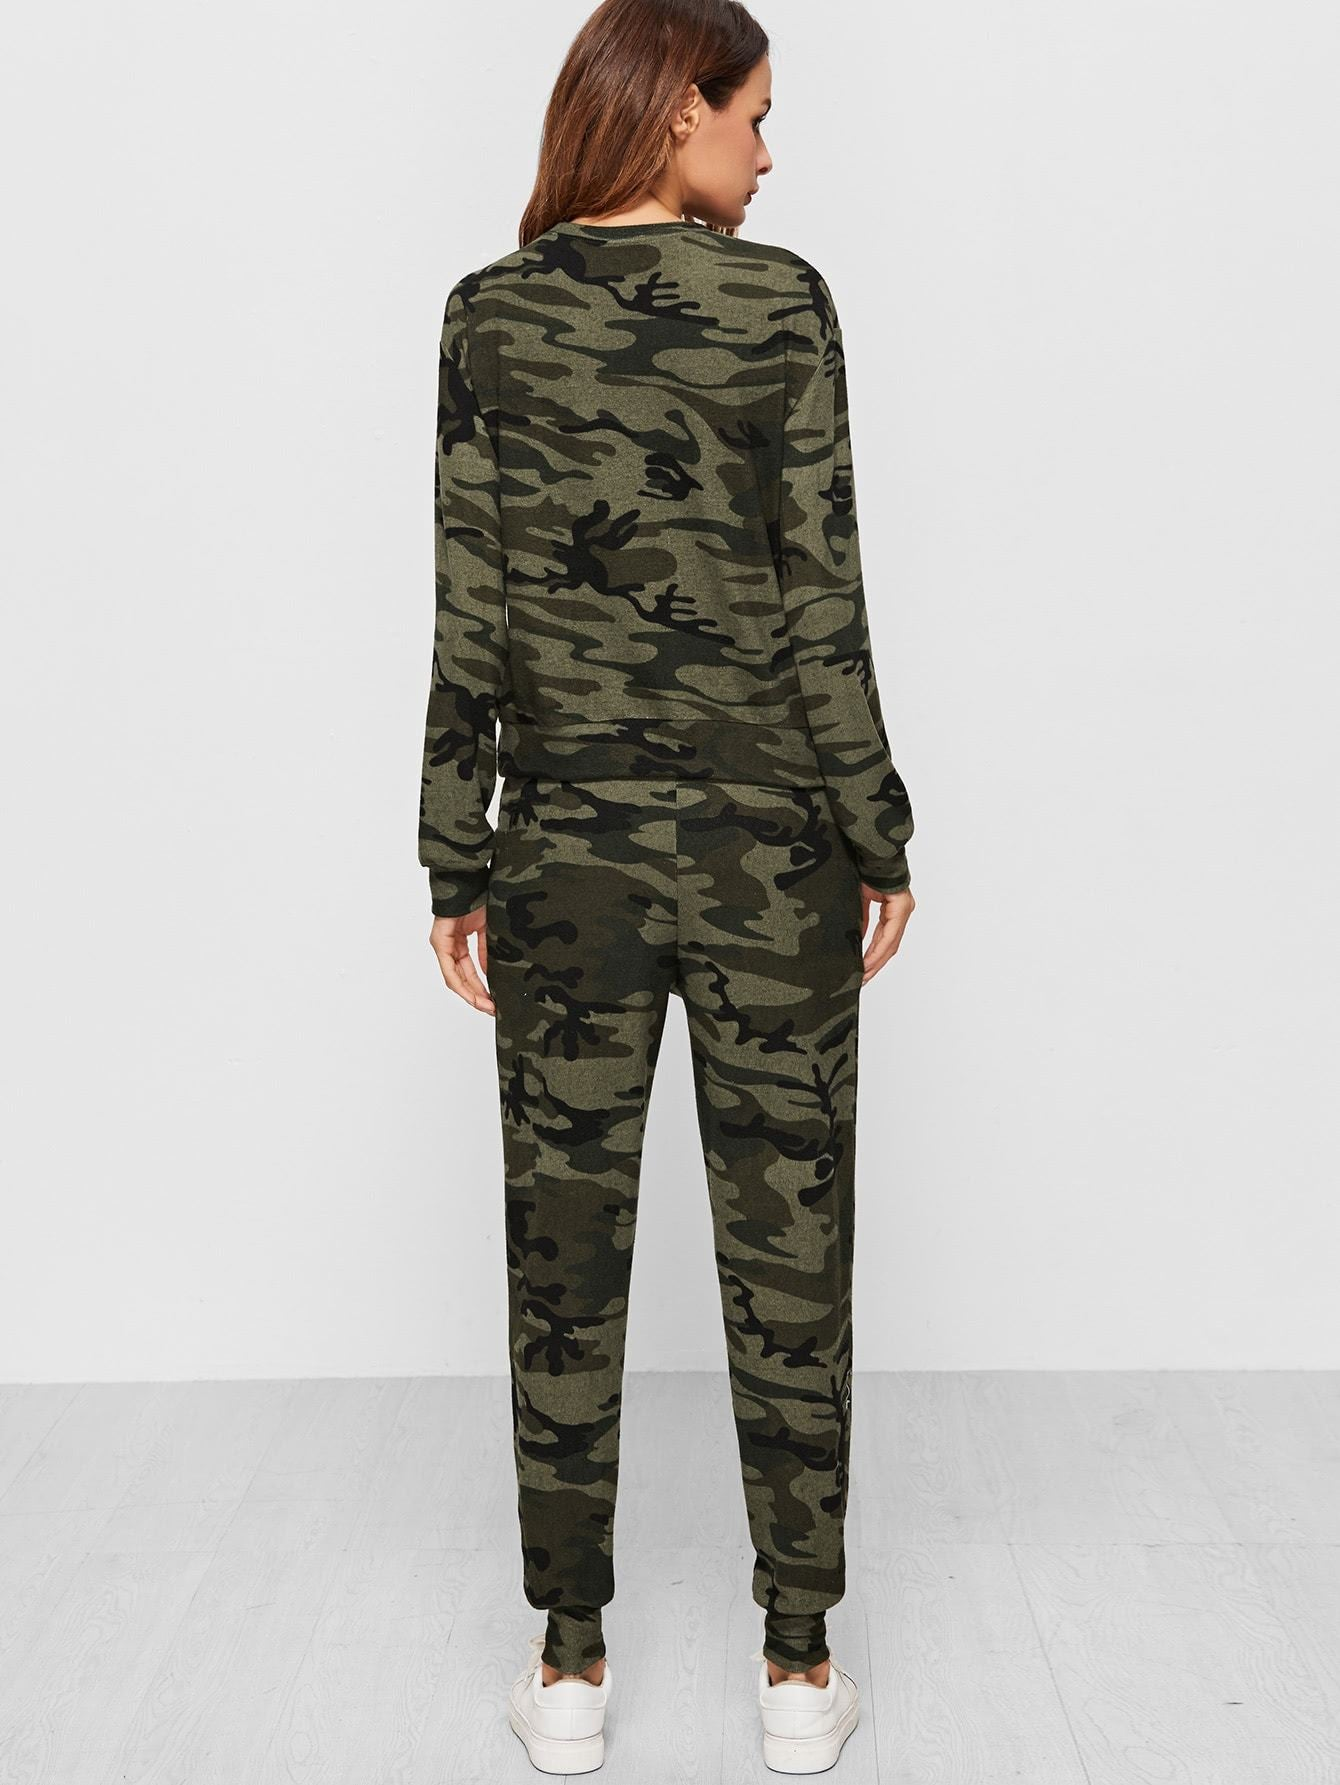 Ladies Camo Print Sweatsuit